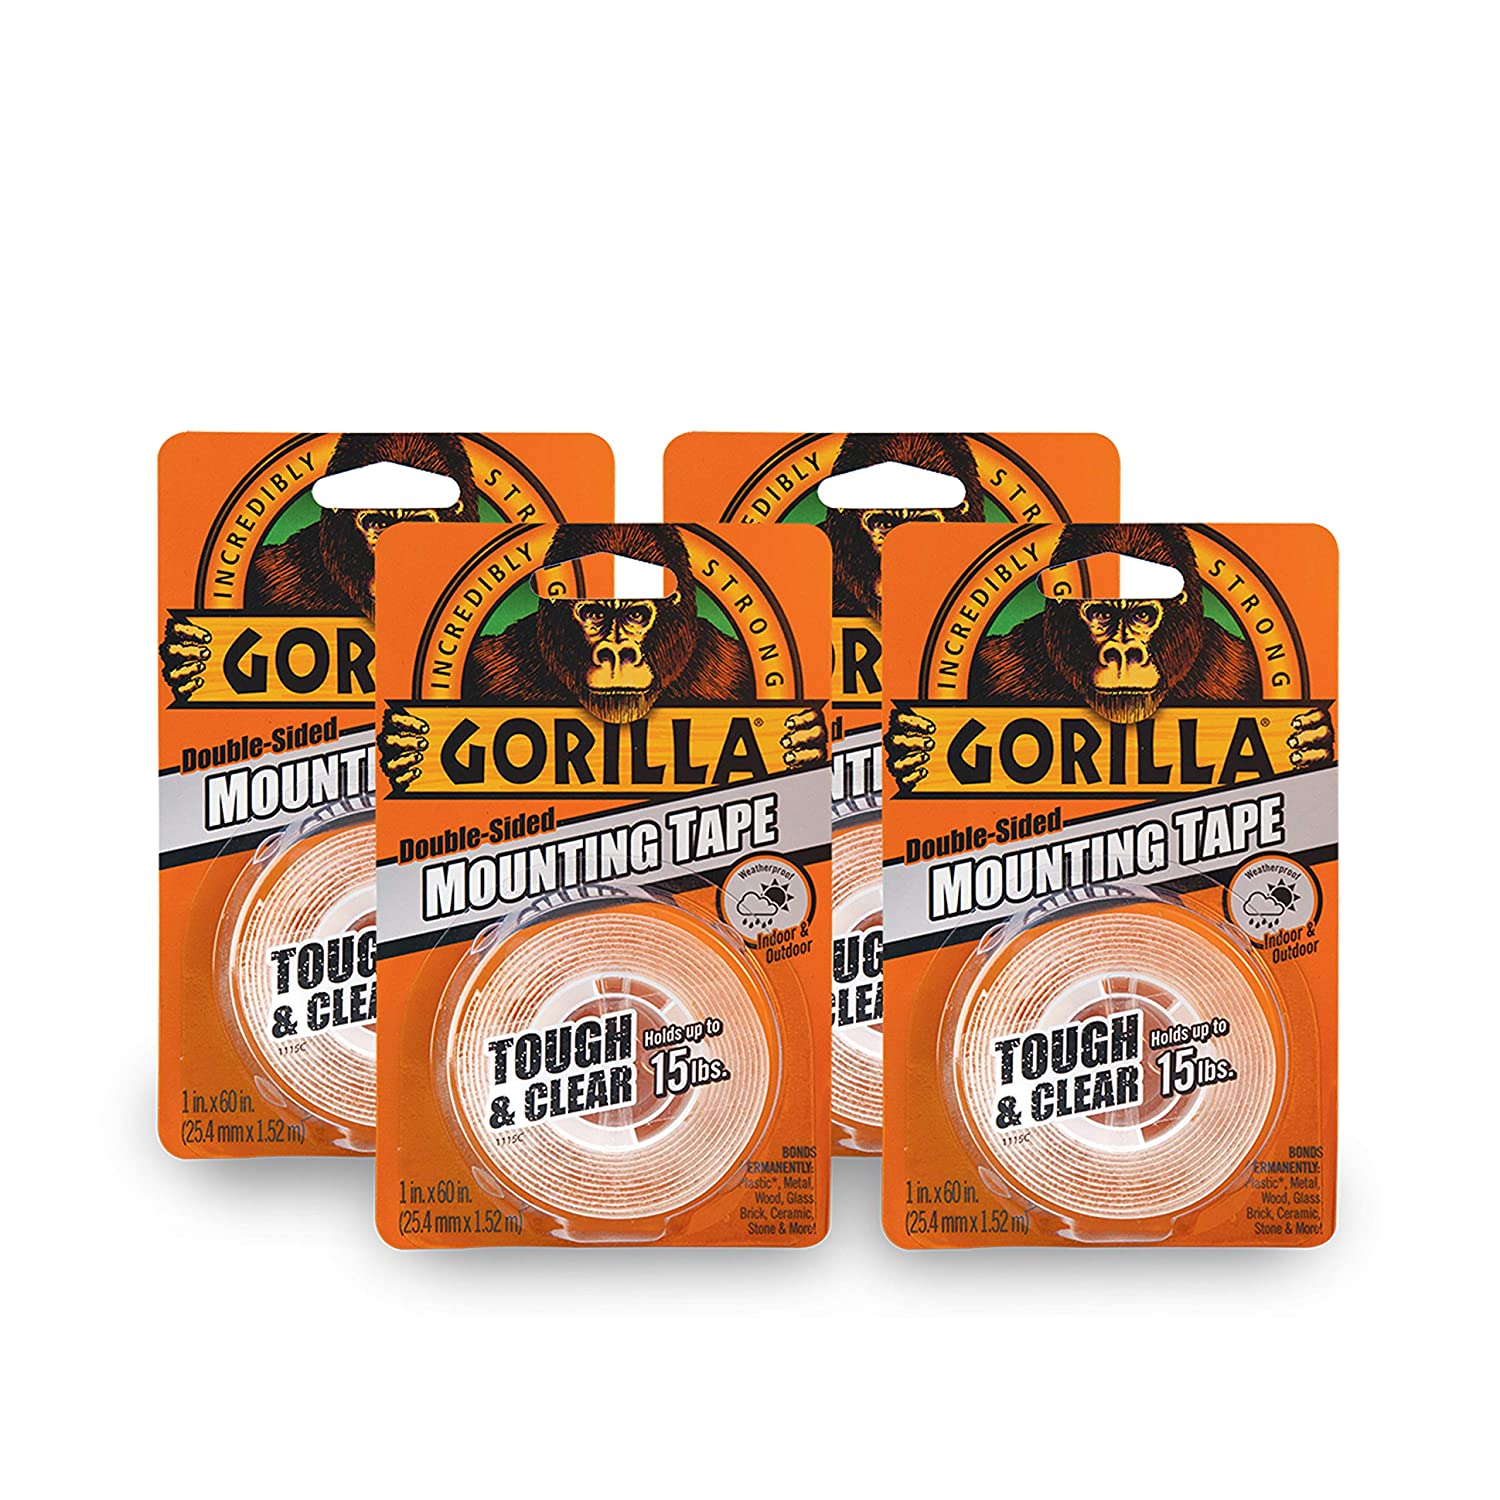 Gorilla 6065001-3 Tough & Clear Mounting Tape, Double-Sided, 1' x 60', Clear, (Pack of 3), 3 - Pack 3 Piece